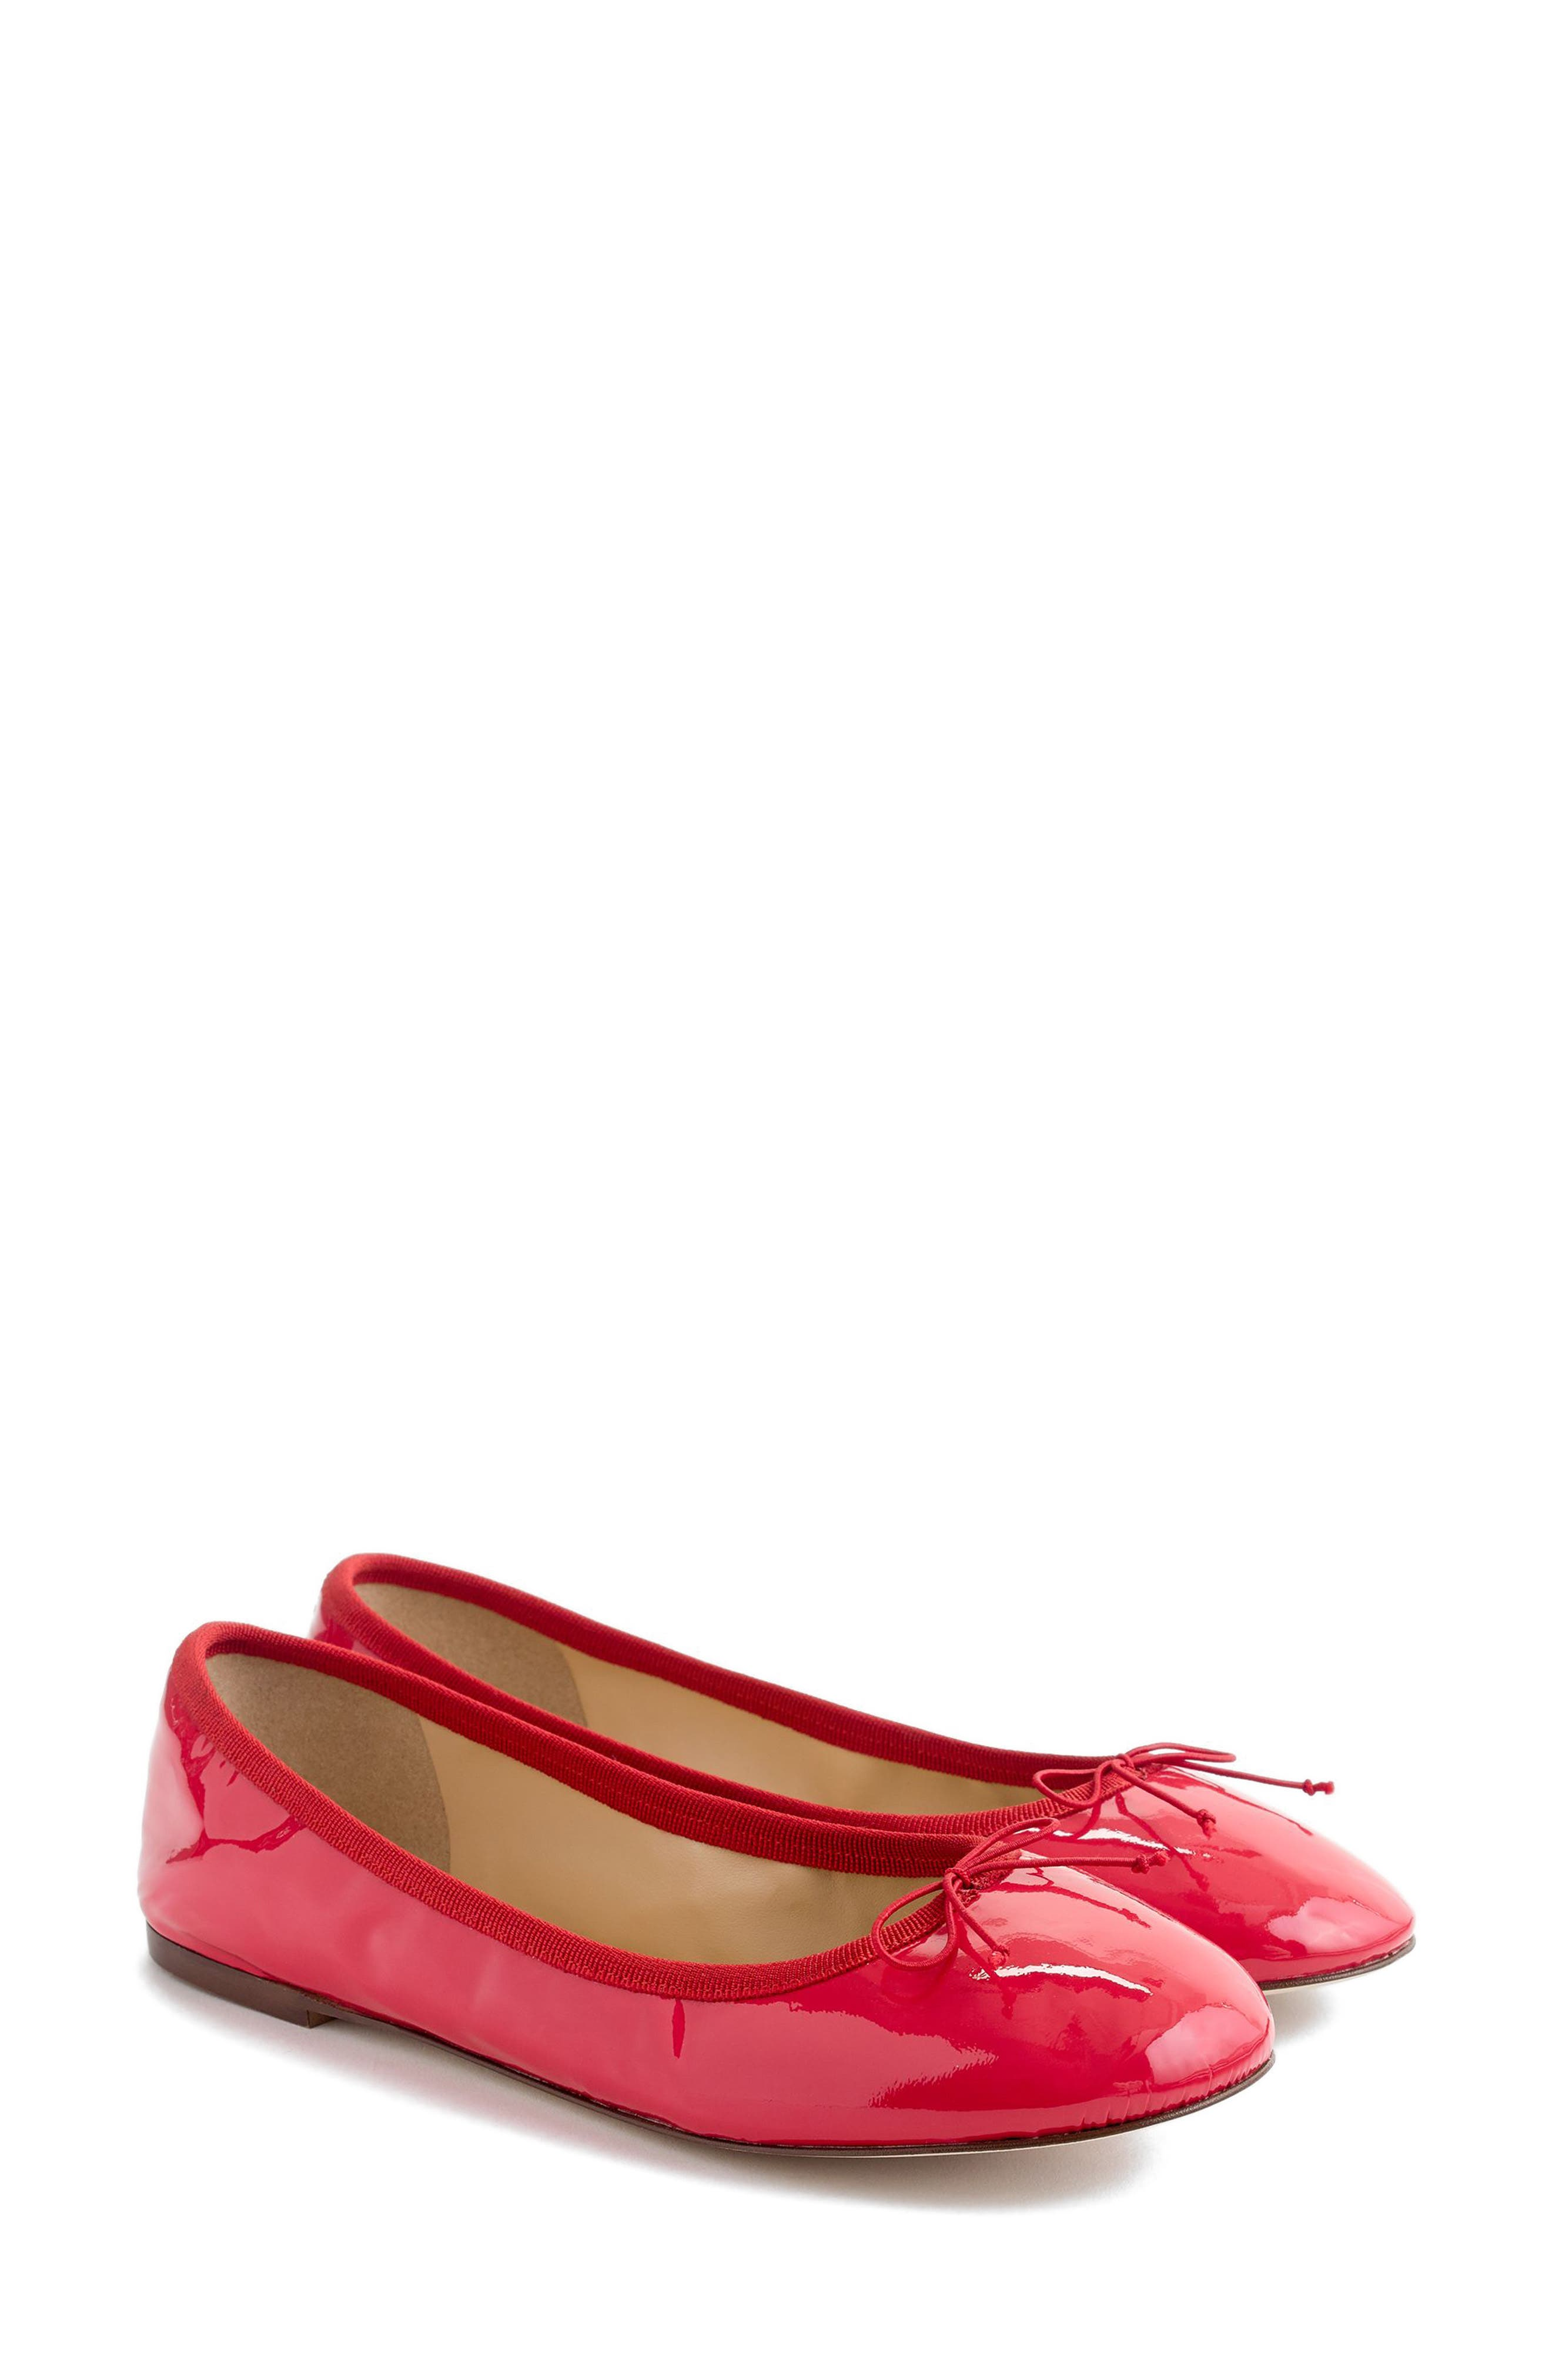 J.Crew Evie Ballet Flat,                         Main,                         color, Providence Red Leather